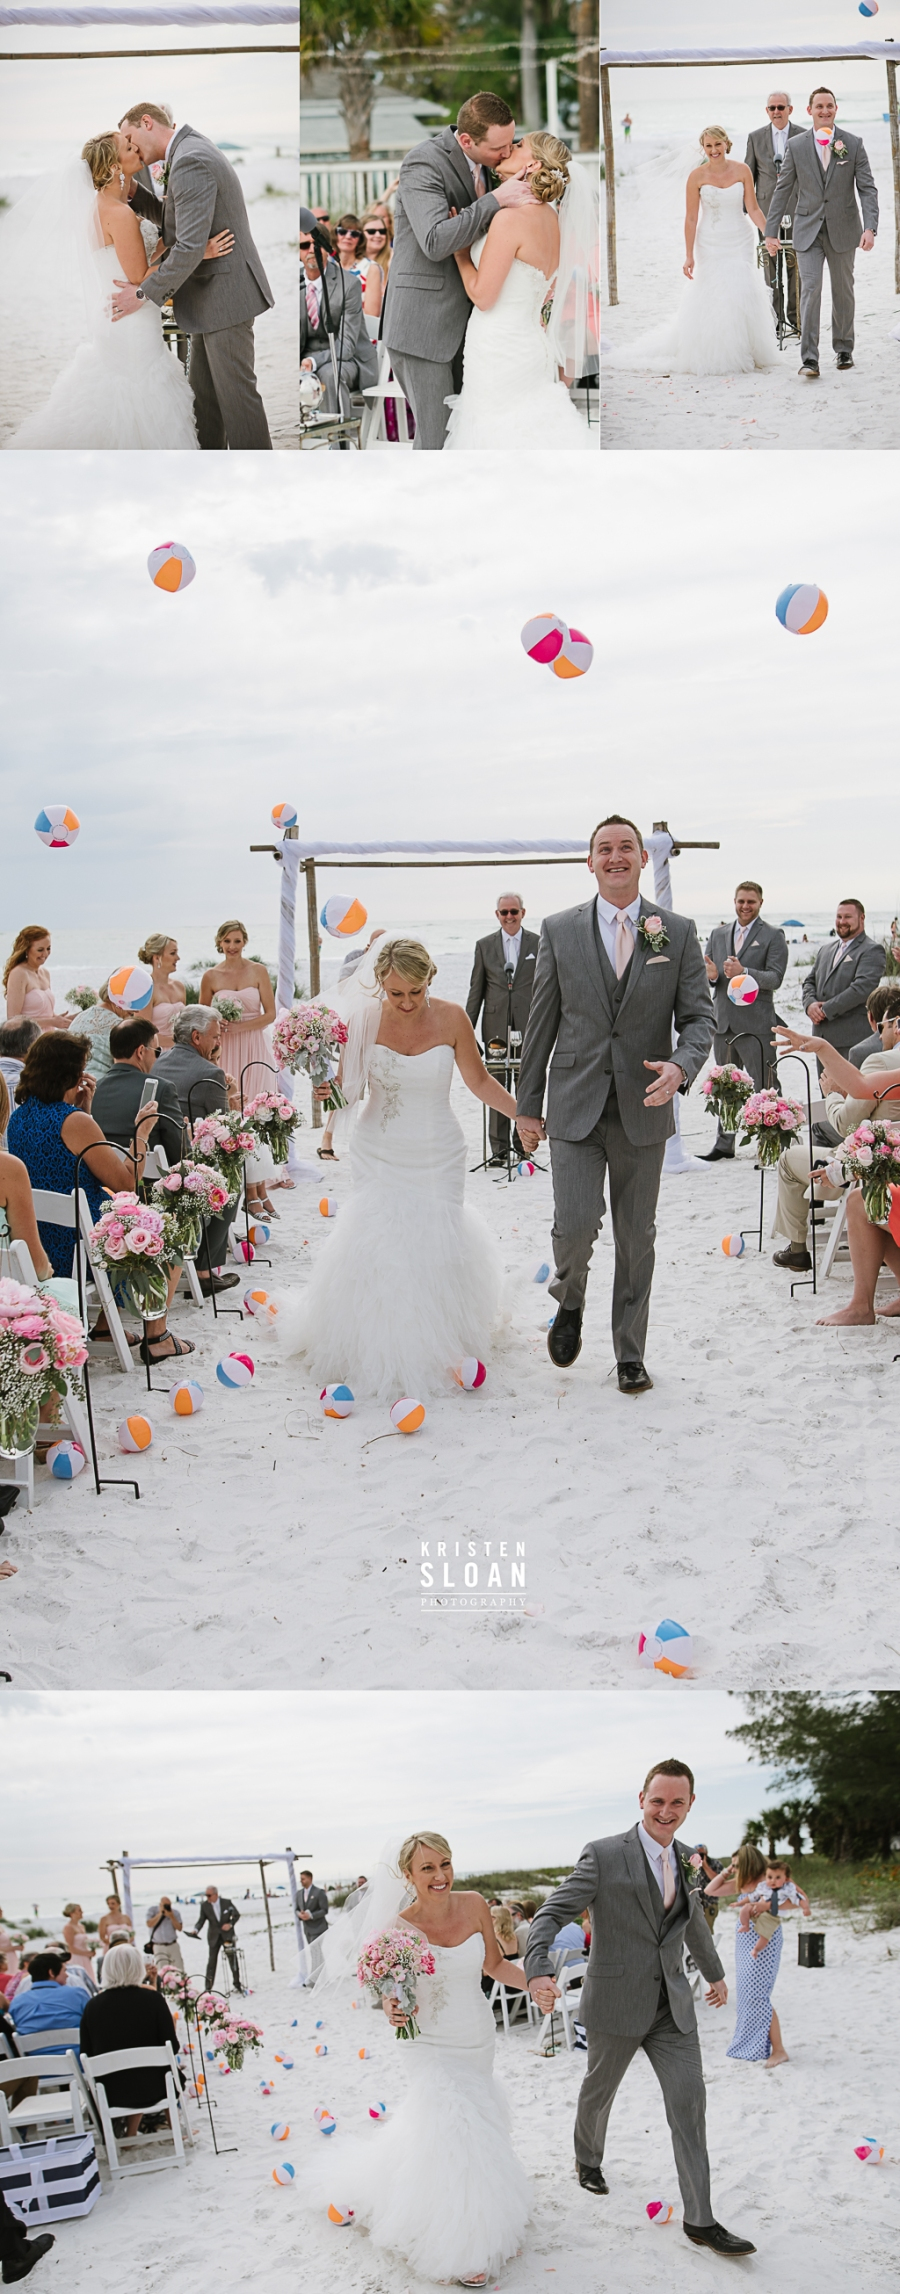 Anna Maria Island Florida Beach Wedding Photographer Kristen Sloan, Sandbar Restaurant Wedding Anna Maria Island, Beach Ball Wedding Toss